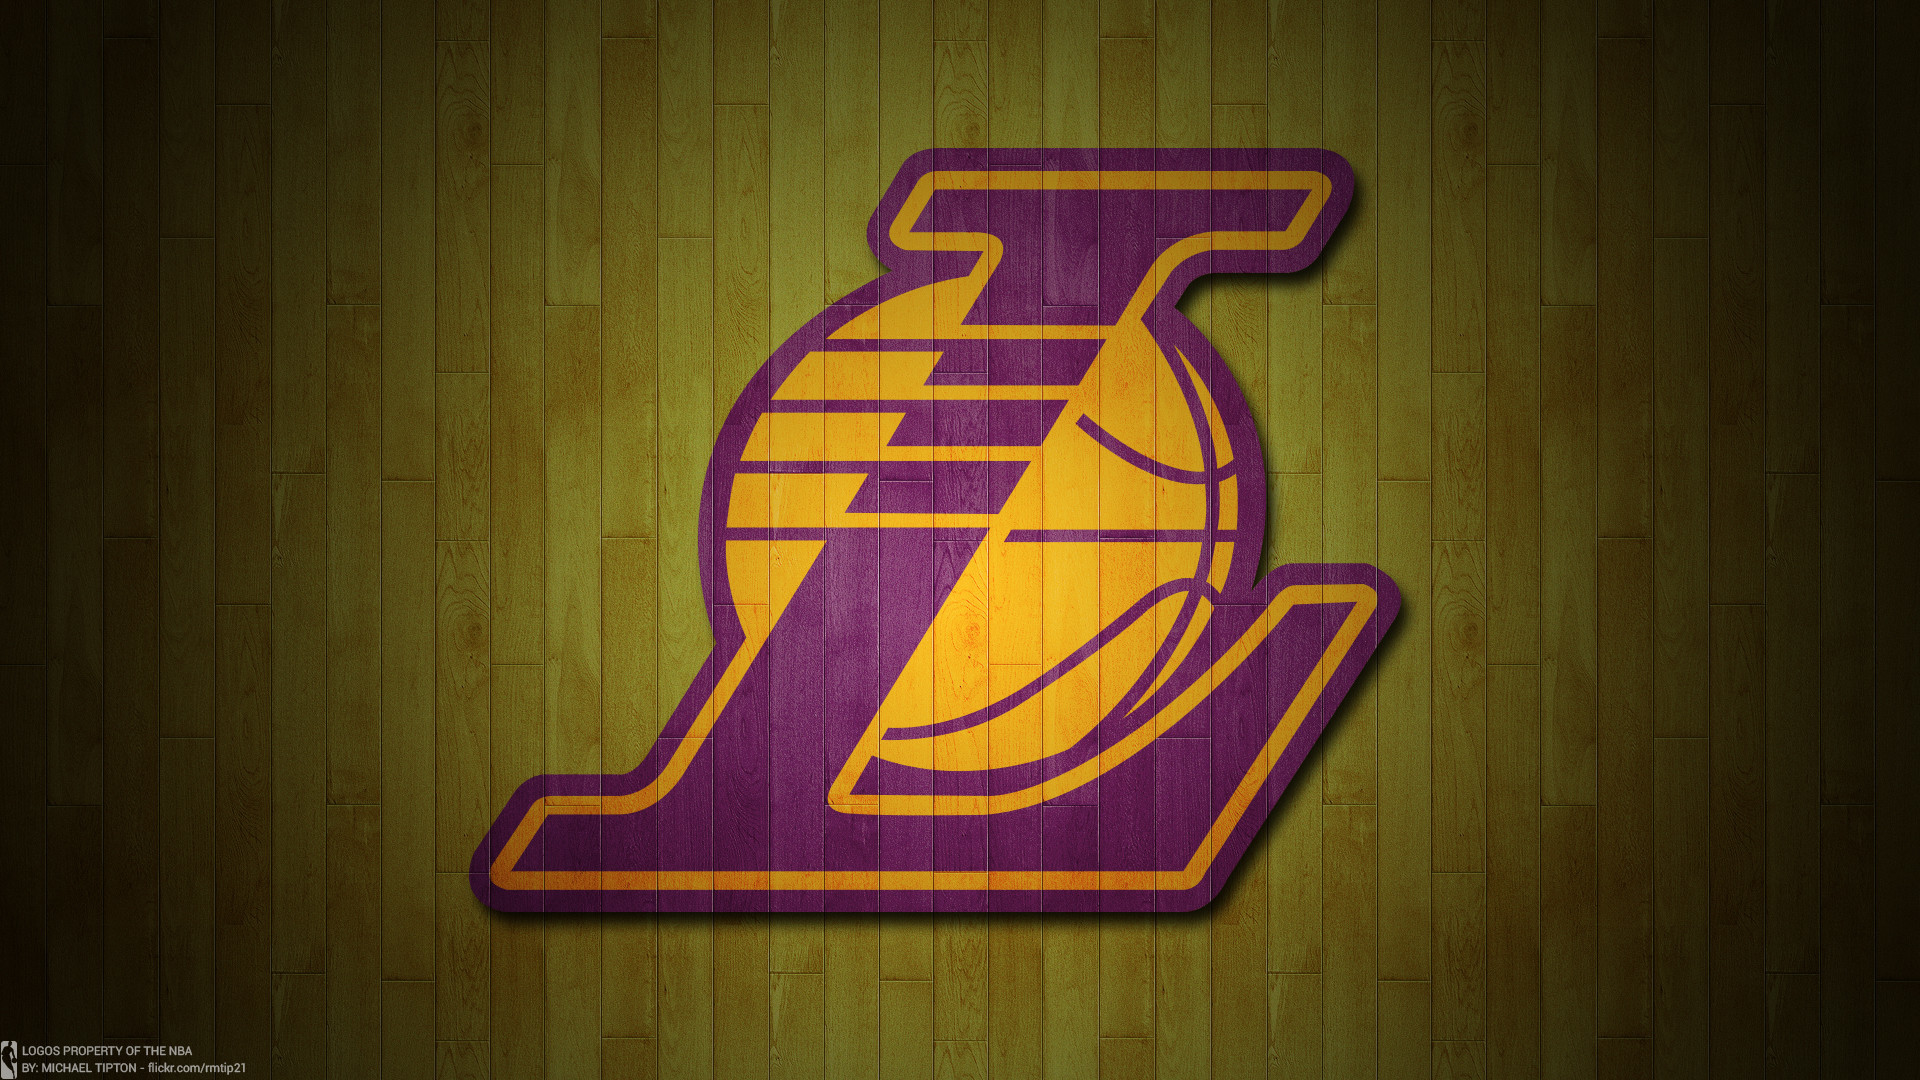 1920x1080 1920x1080 ... los angeles lakers 2017 nba basketball hardwood logo wallpaper free pc desktop · Download